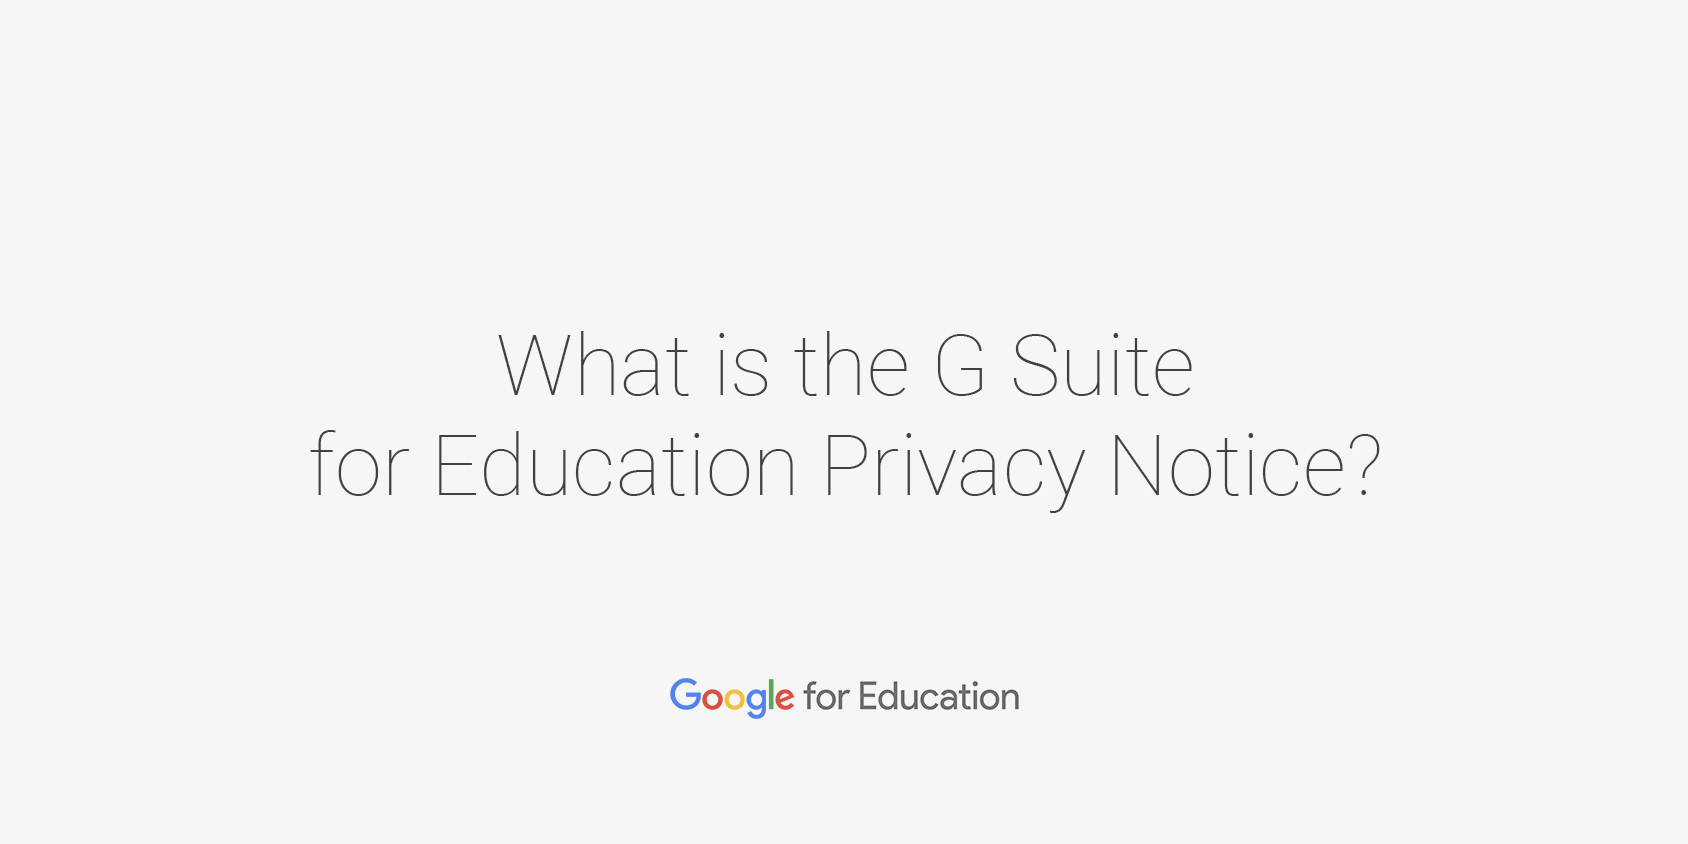 Privacy security google for education privacy notice and contractual obligations xflitez Images